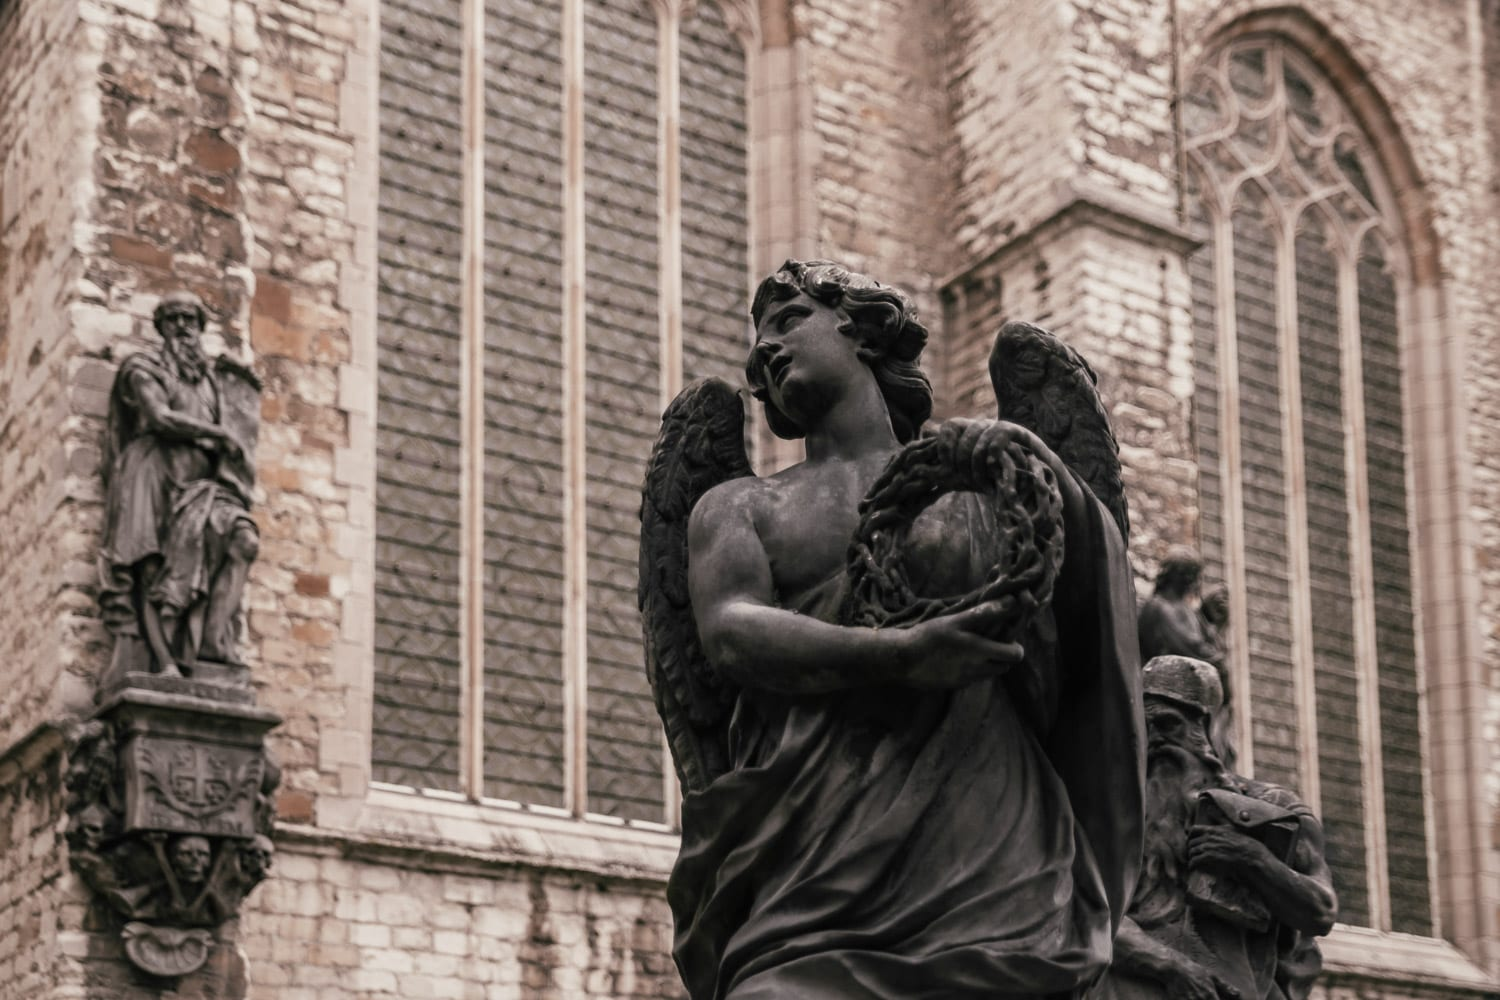 The Calvary - Angel Statues in St. Paul's Churchyard, Antwerp, Belgium